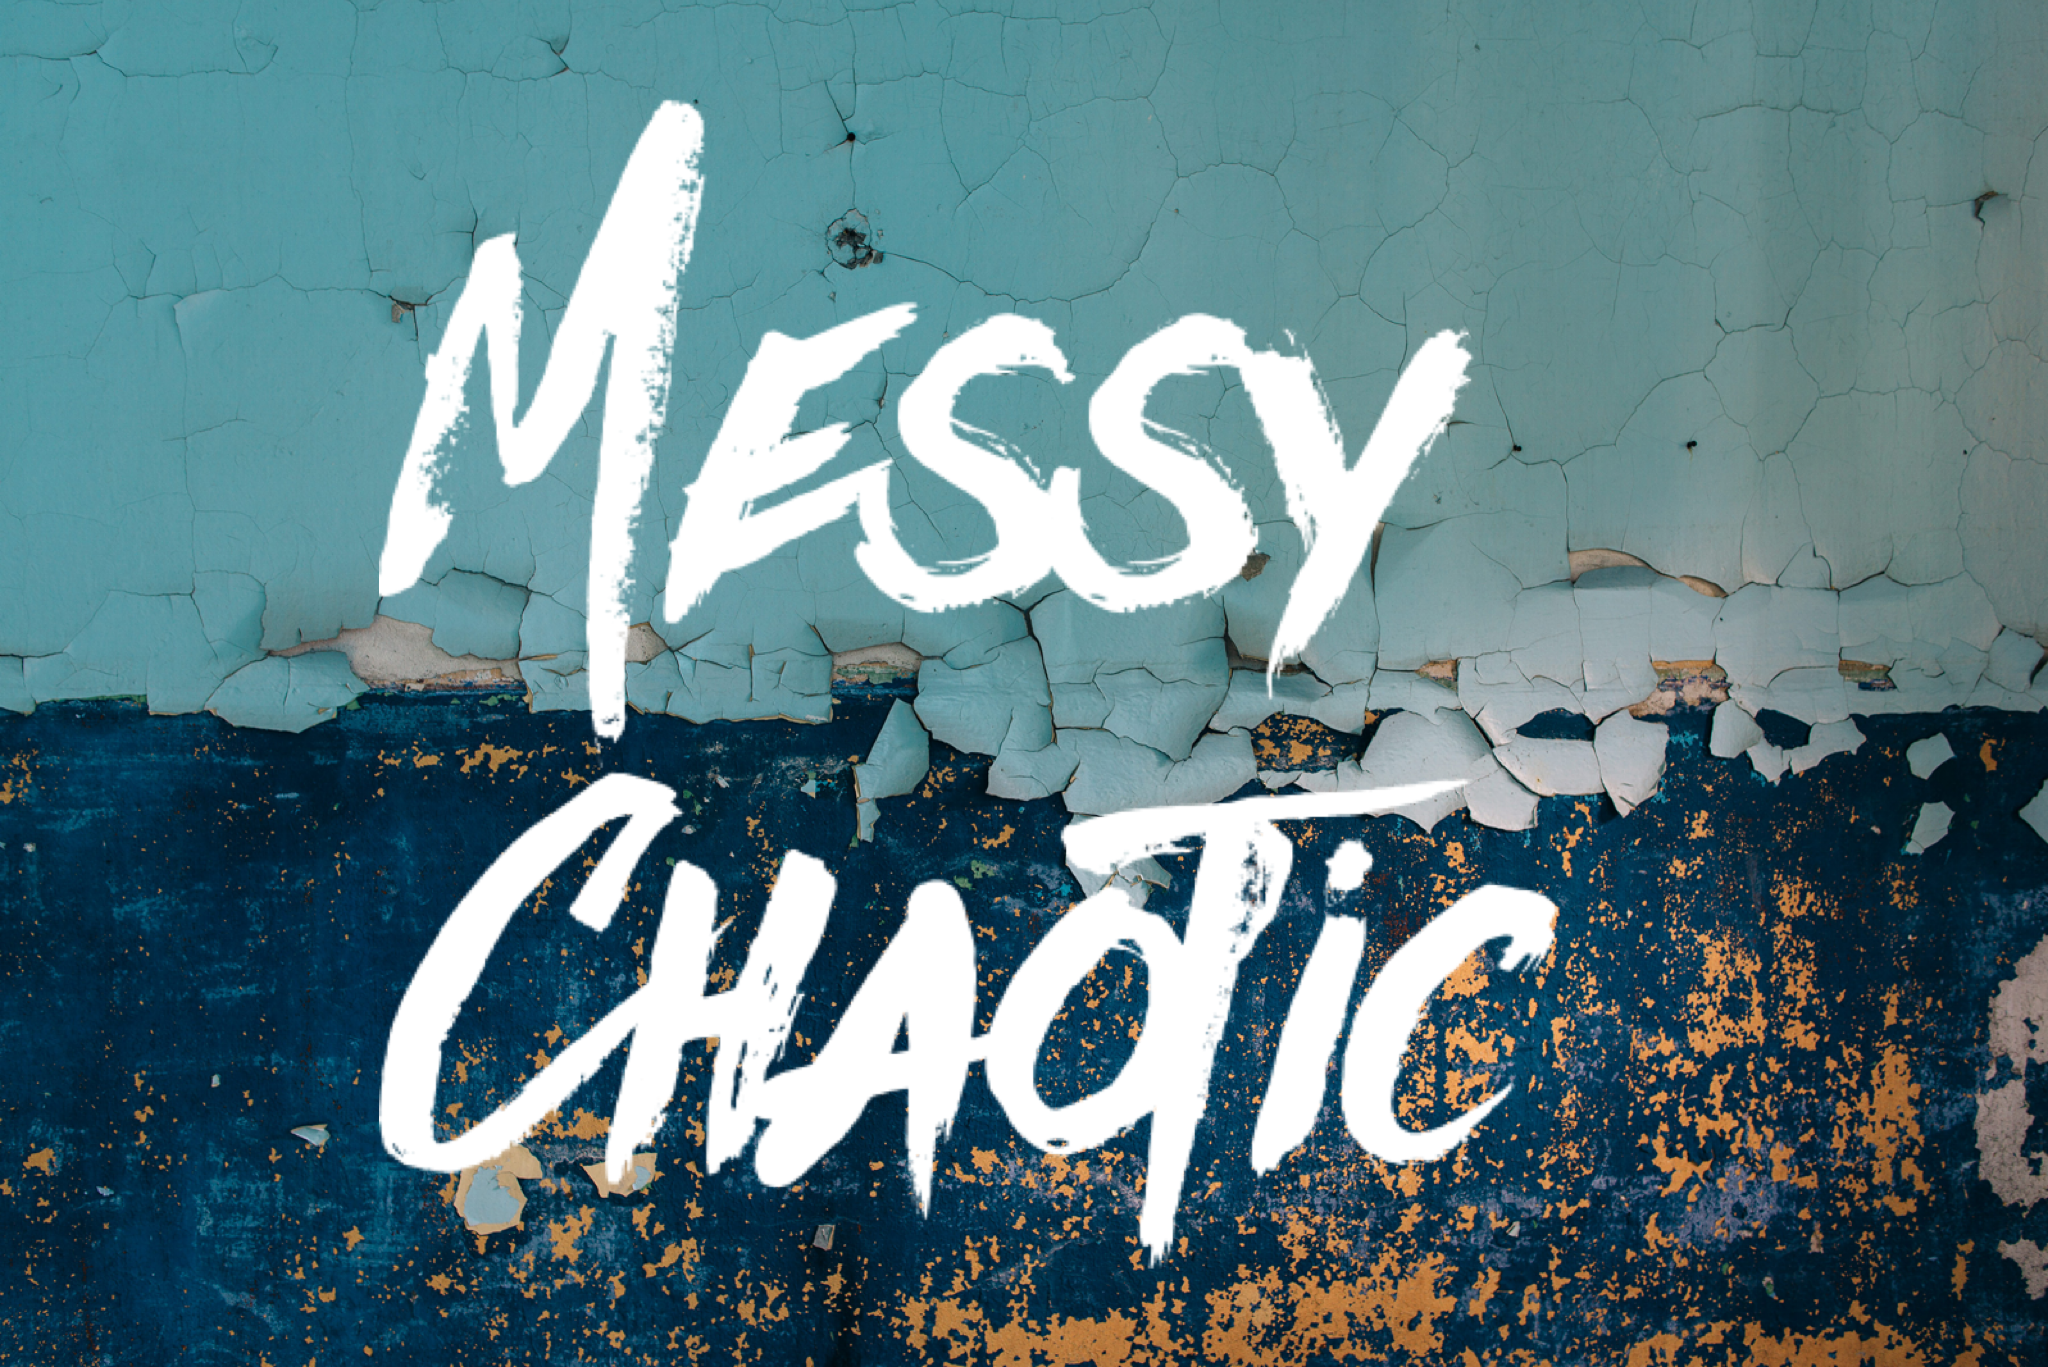 Messy and chaotic changes